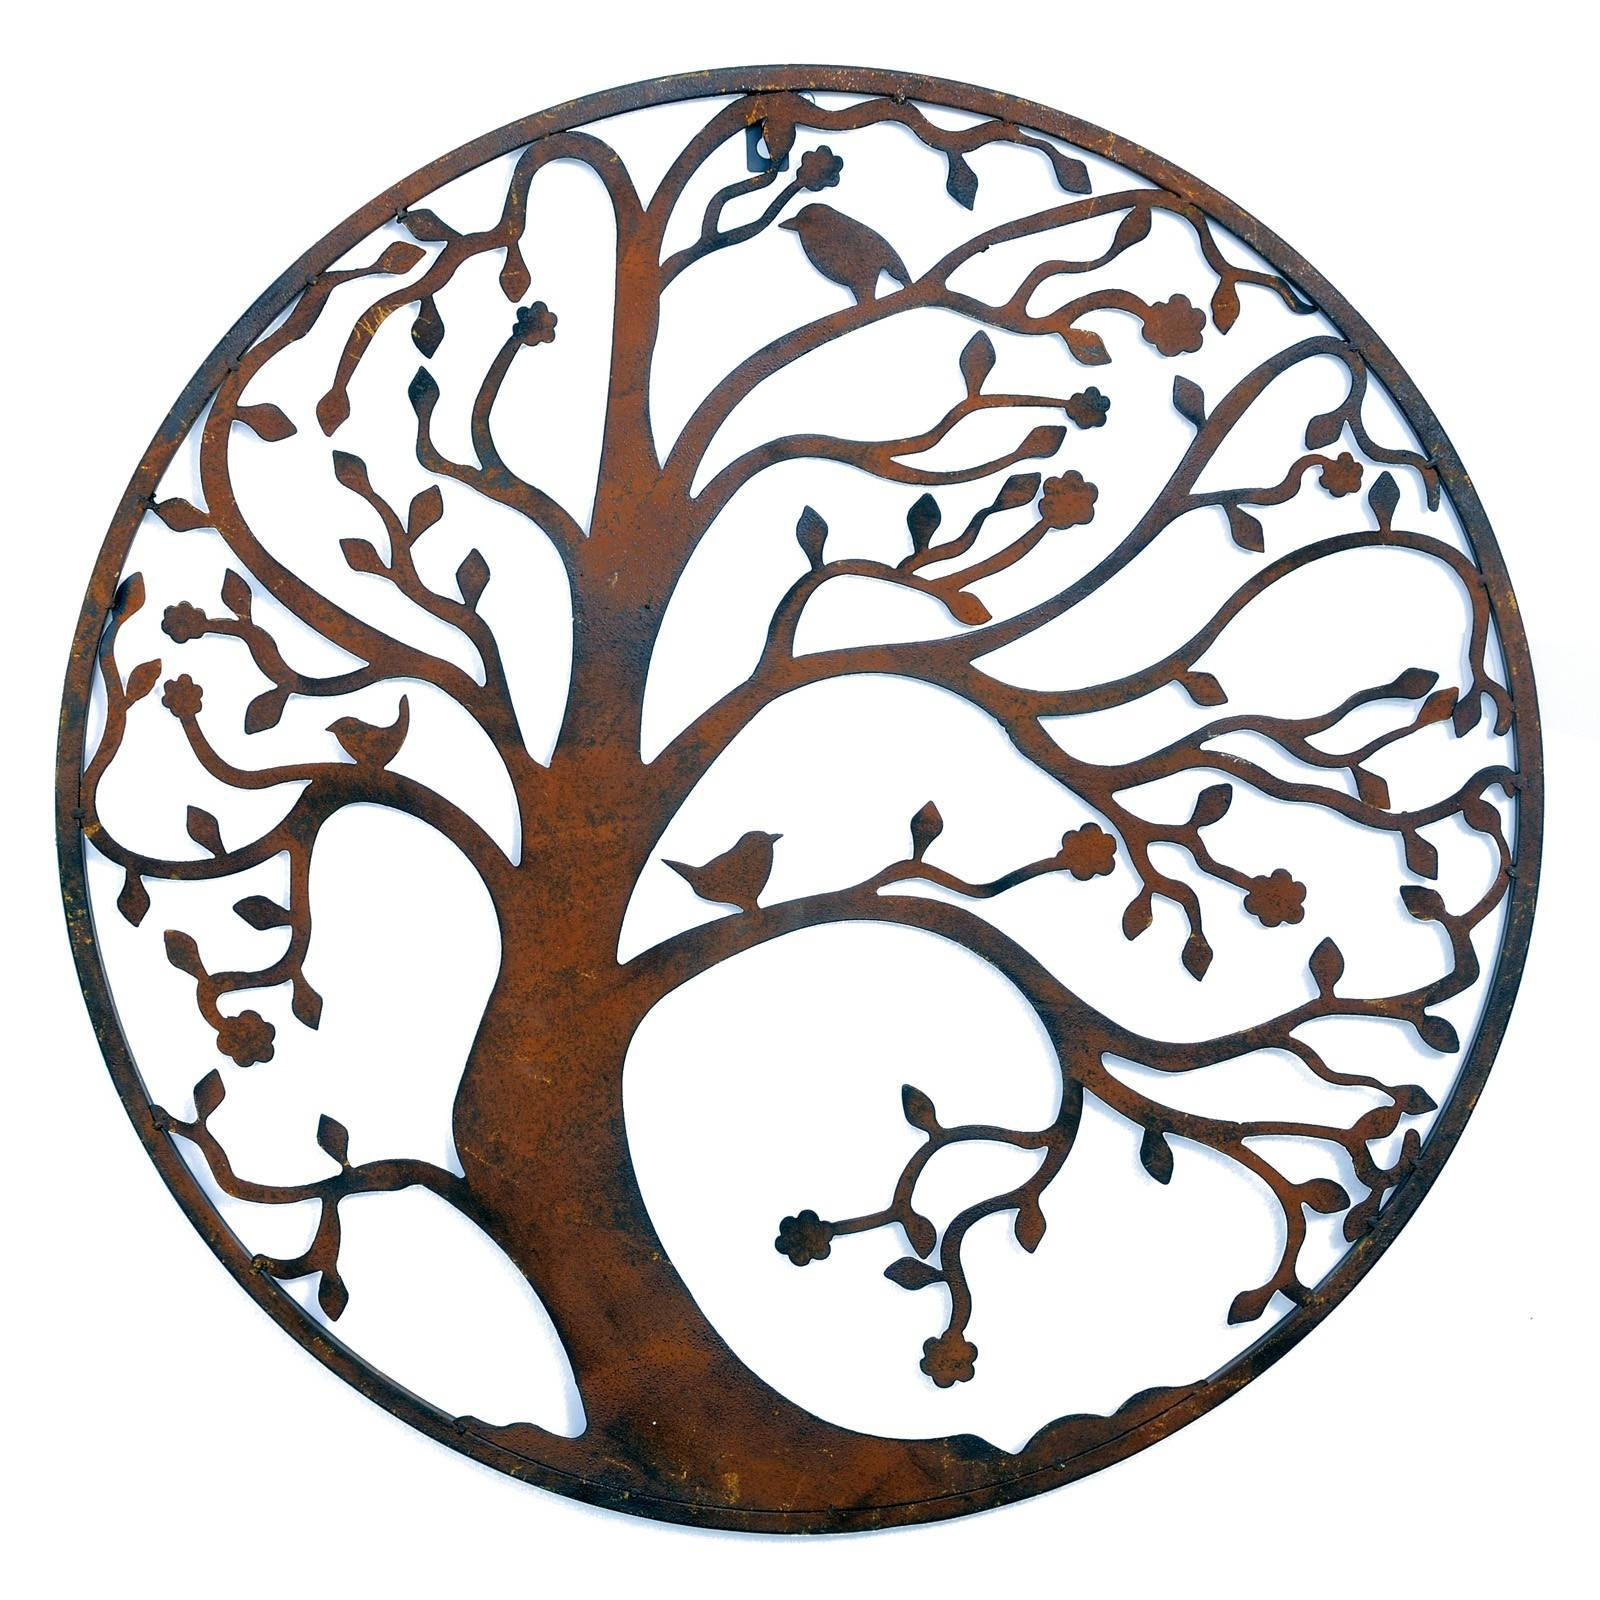 Wall Art Designs: Rusted Classic Design Tree Leaf Branch Birds Regarding Latest Round Metal Wall Art (View 12 of 20)